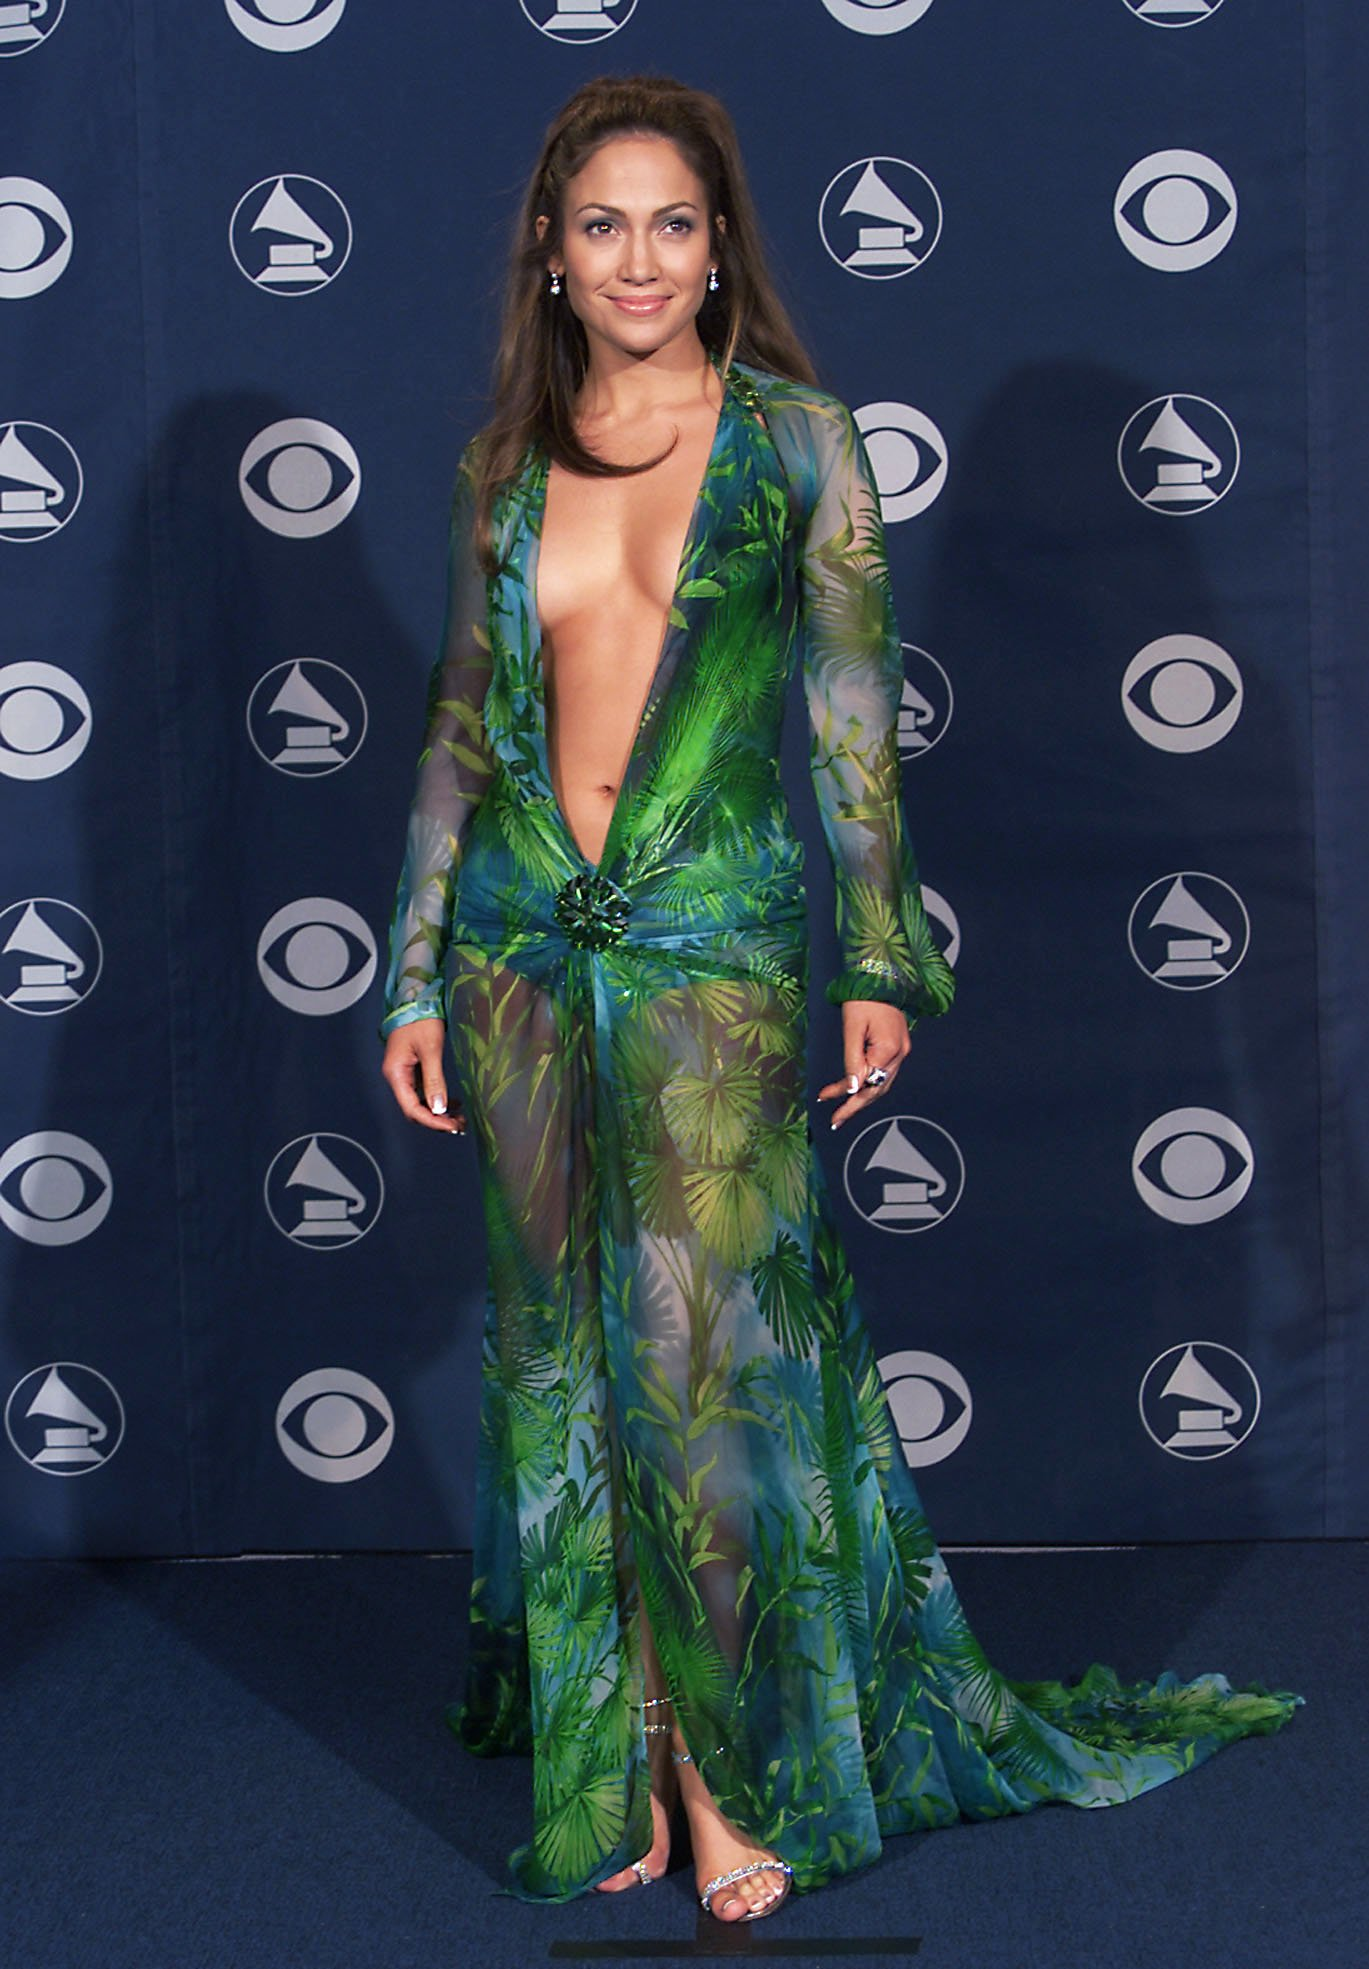 Jennifer Lopez attends the 42nd Annual Grammy Awards in Los Angeles, California on February 23, 2000 | Photo: Getty Images